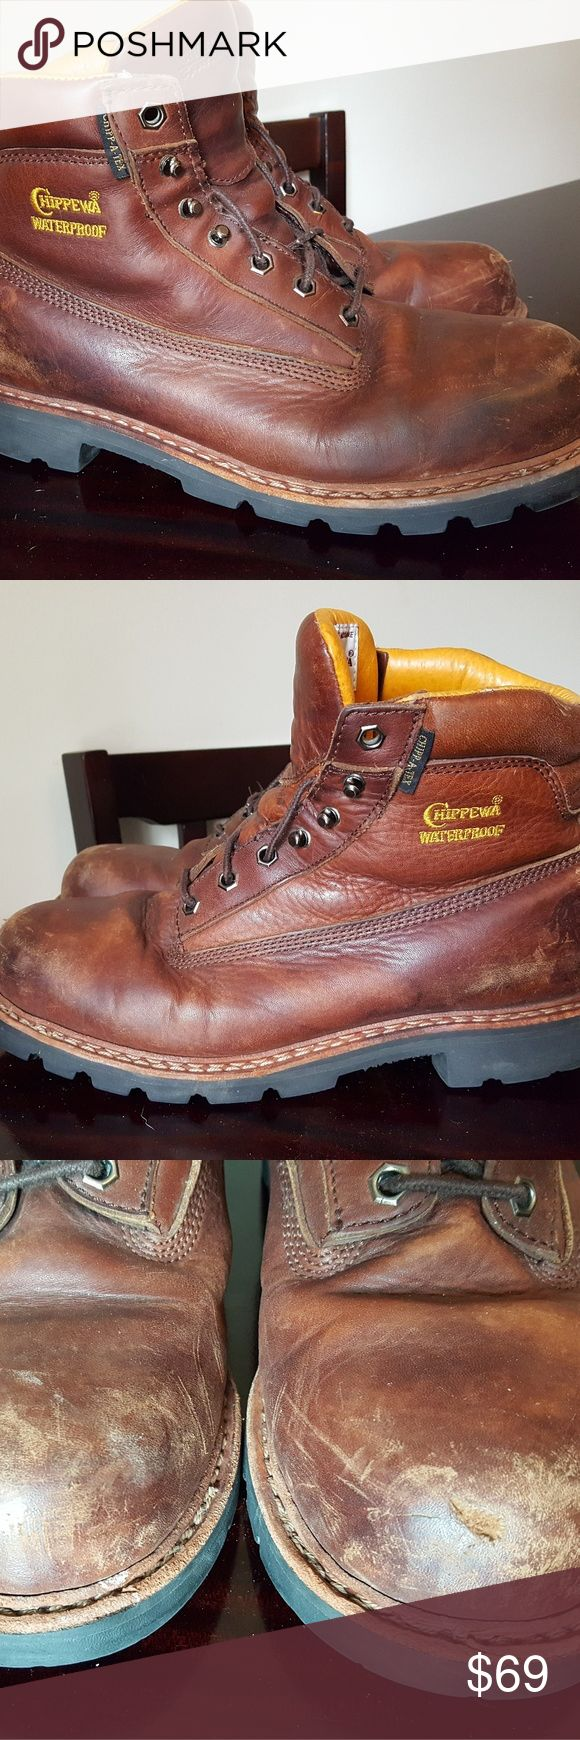 "Chippewa Mens 6"" Waterproof Insulated Boots 10.5 W Good condition. Have some wear as seen in pics. Chippewa Shoes Boots"